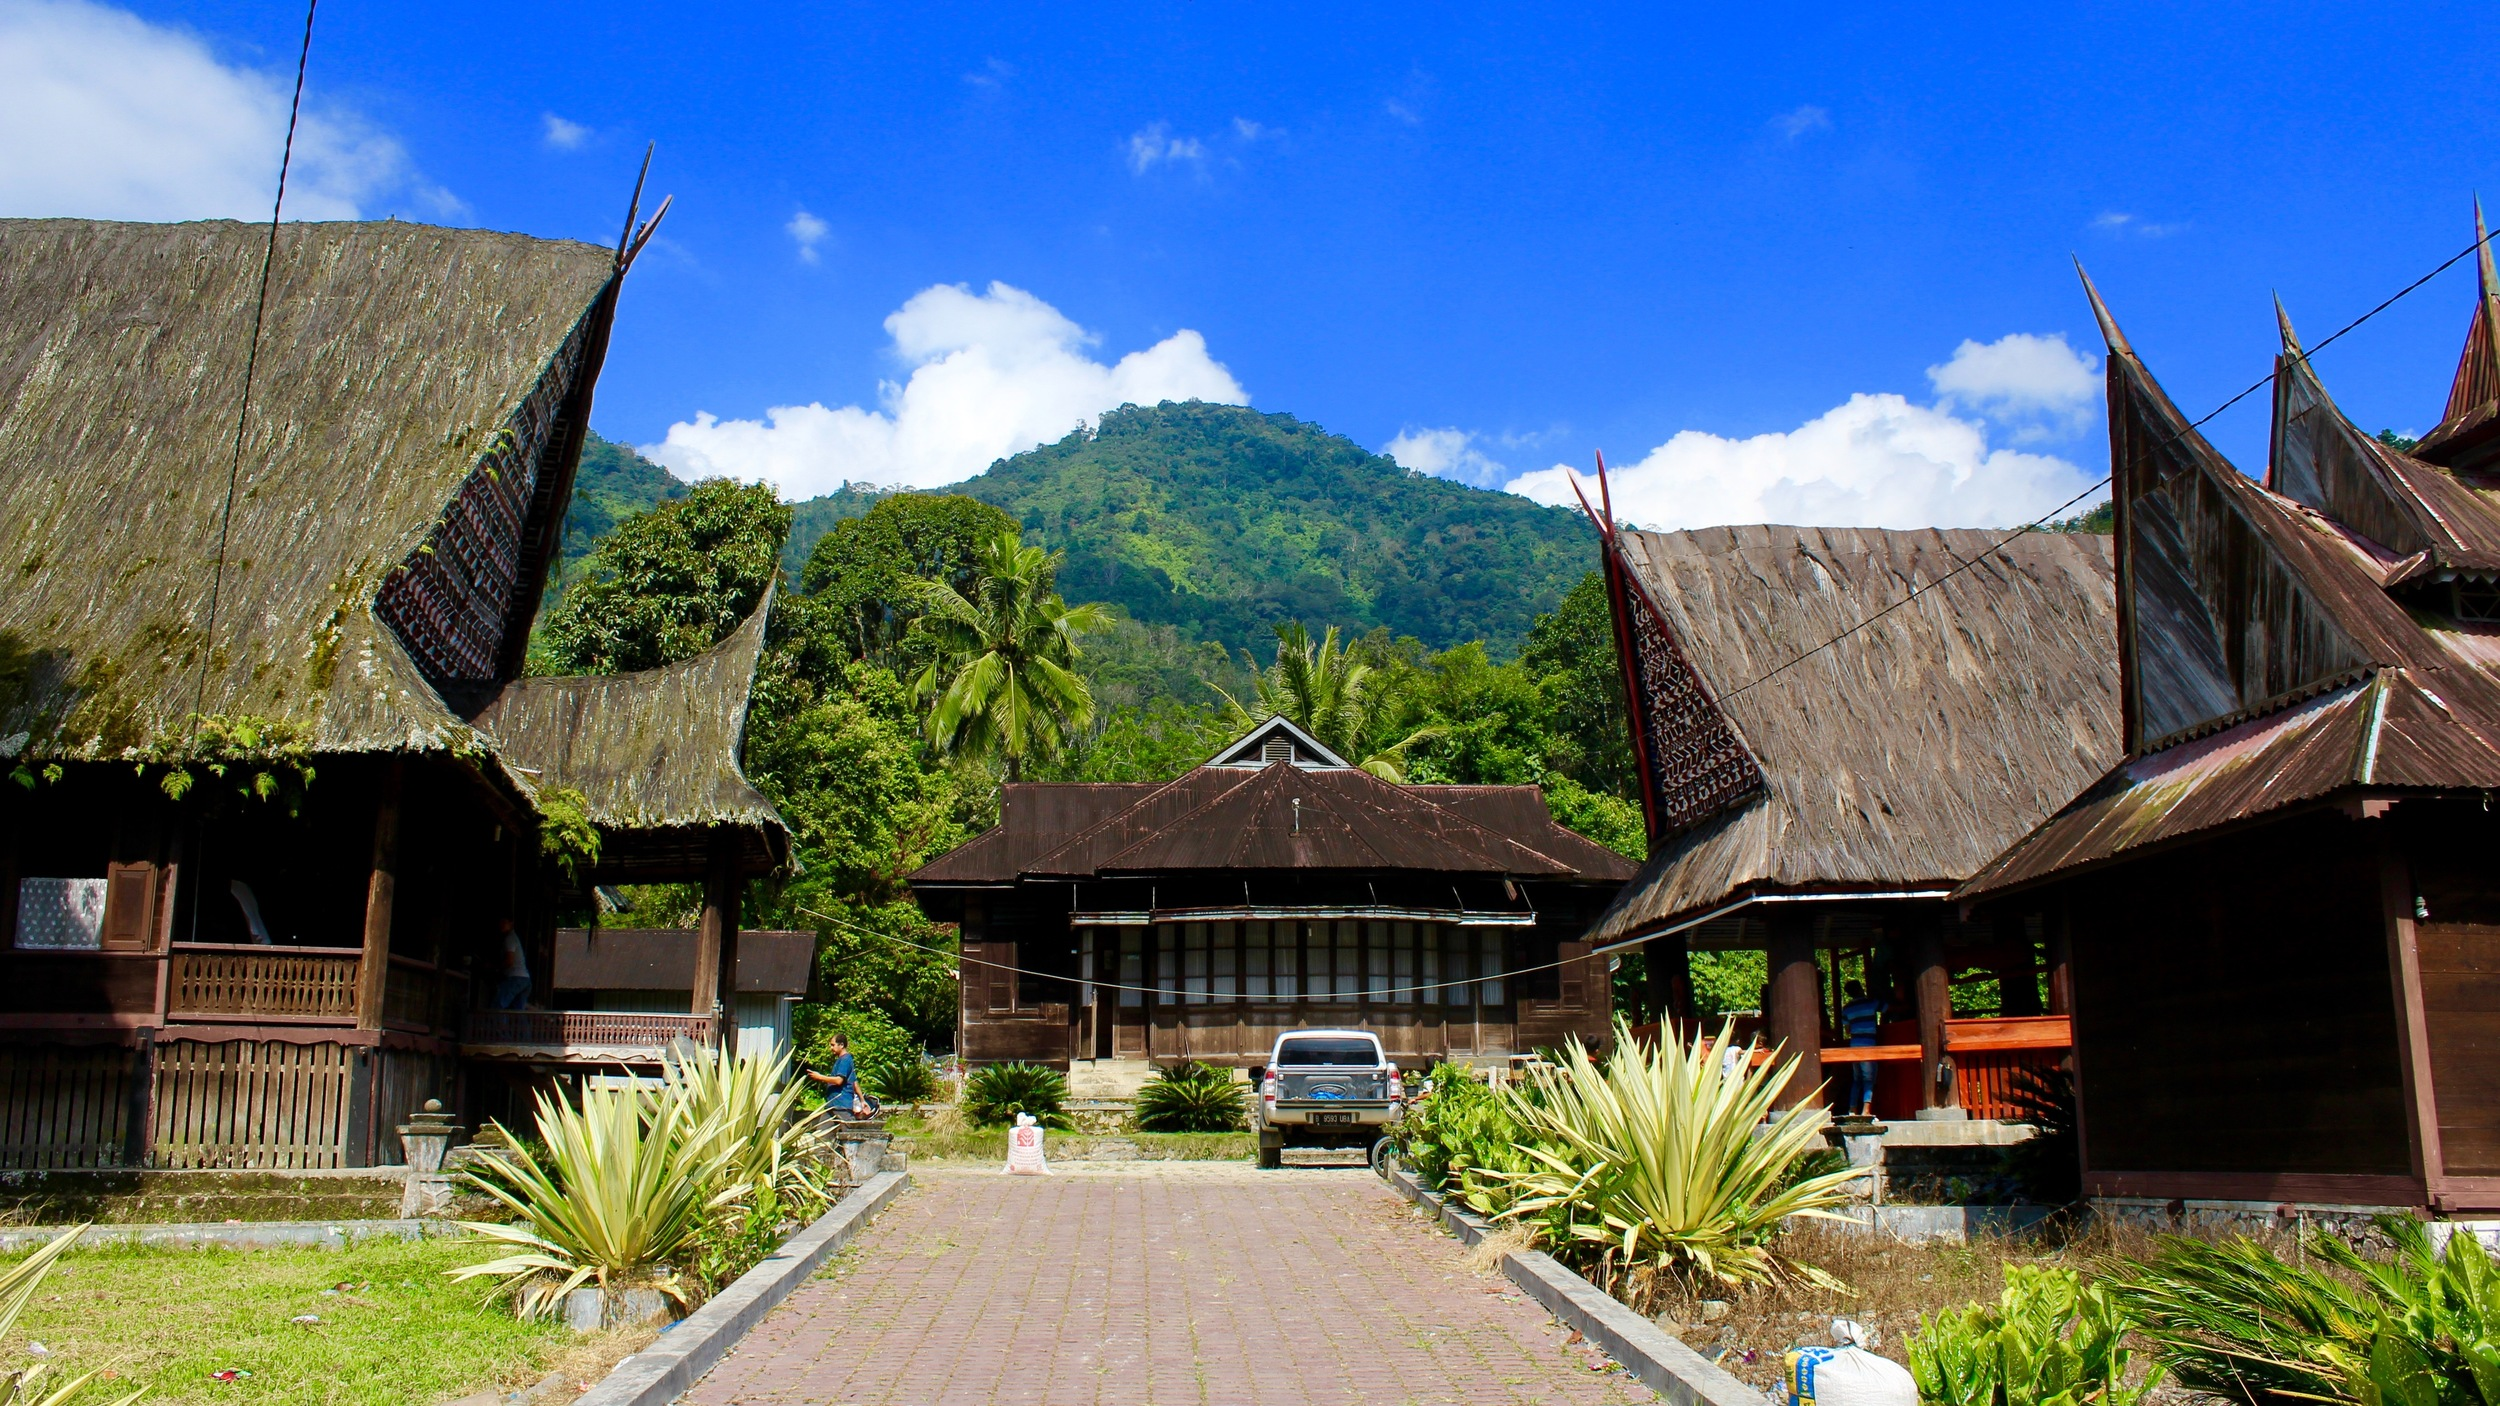 The royal complex of Ulu Pungkut: the king's house is on the left, while the  sopo gordang is on the right.